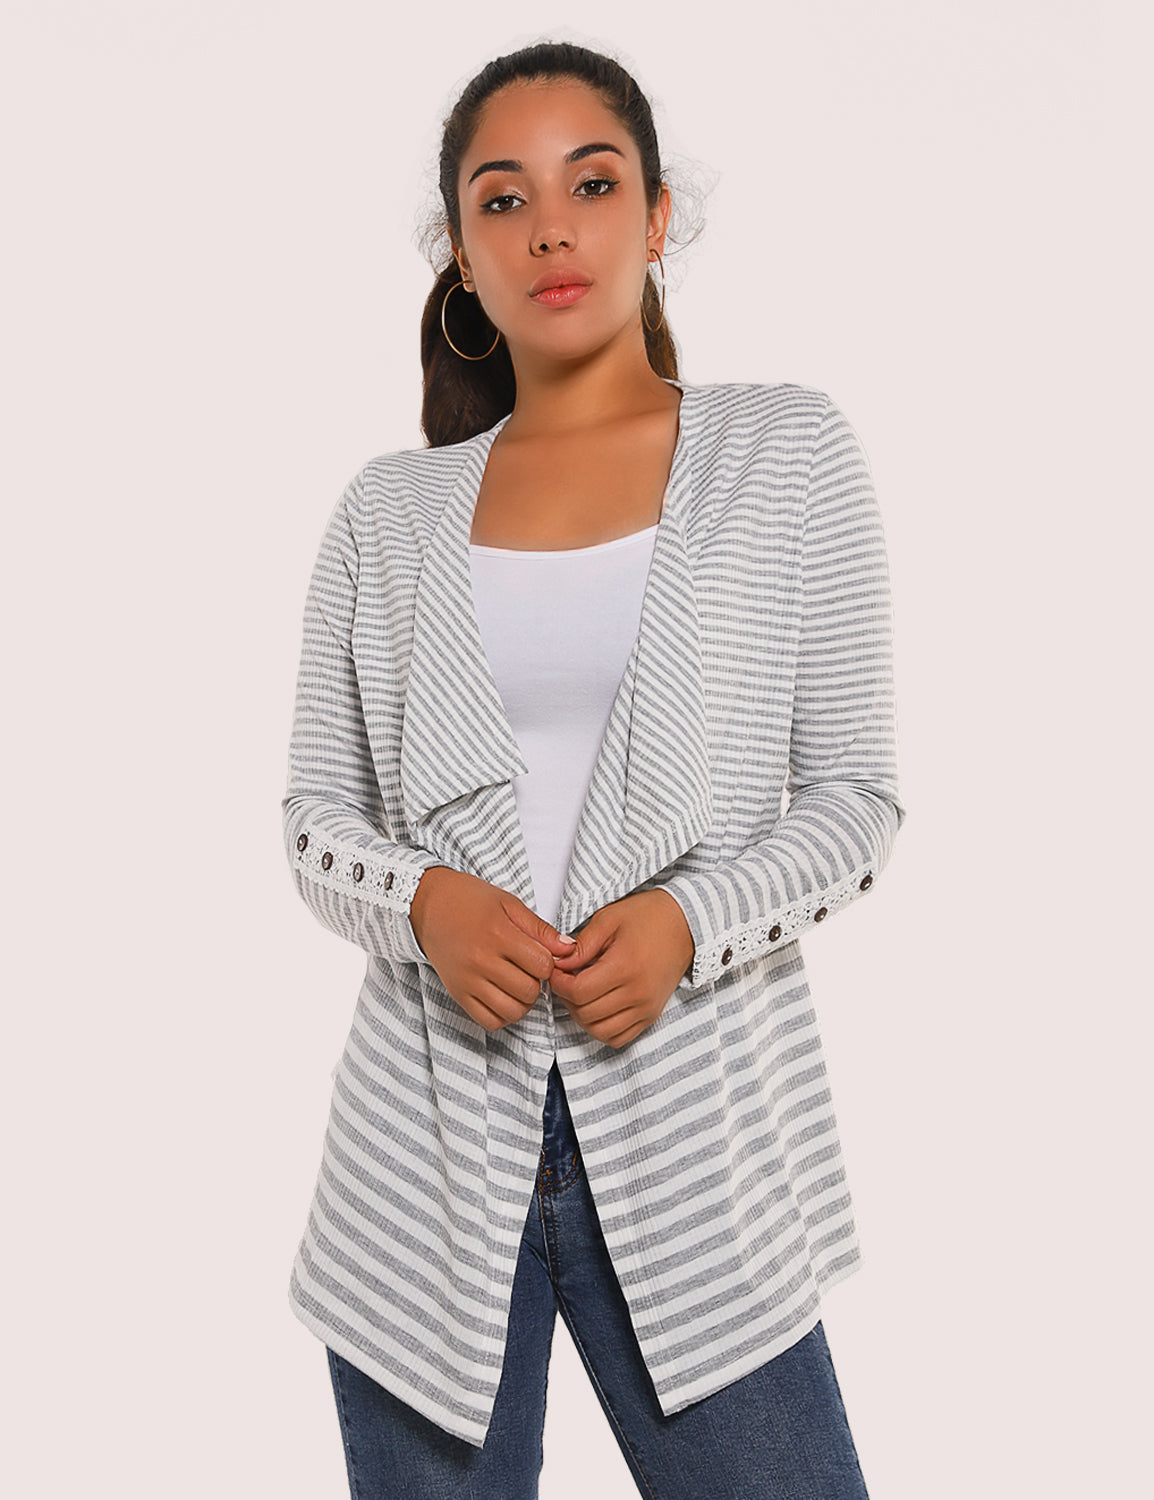 Blooming Jelly_Elegant Lace Sleeves Striped Thin Cardigan_Stripe Patchwork_296302_25_Autumn&Winter Women Open Front_Tops_Cardigan